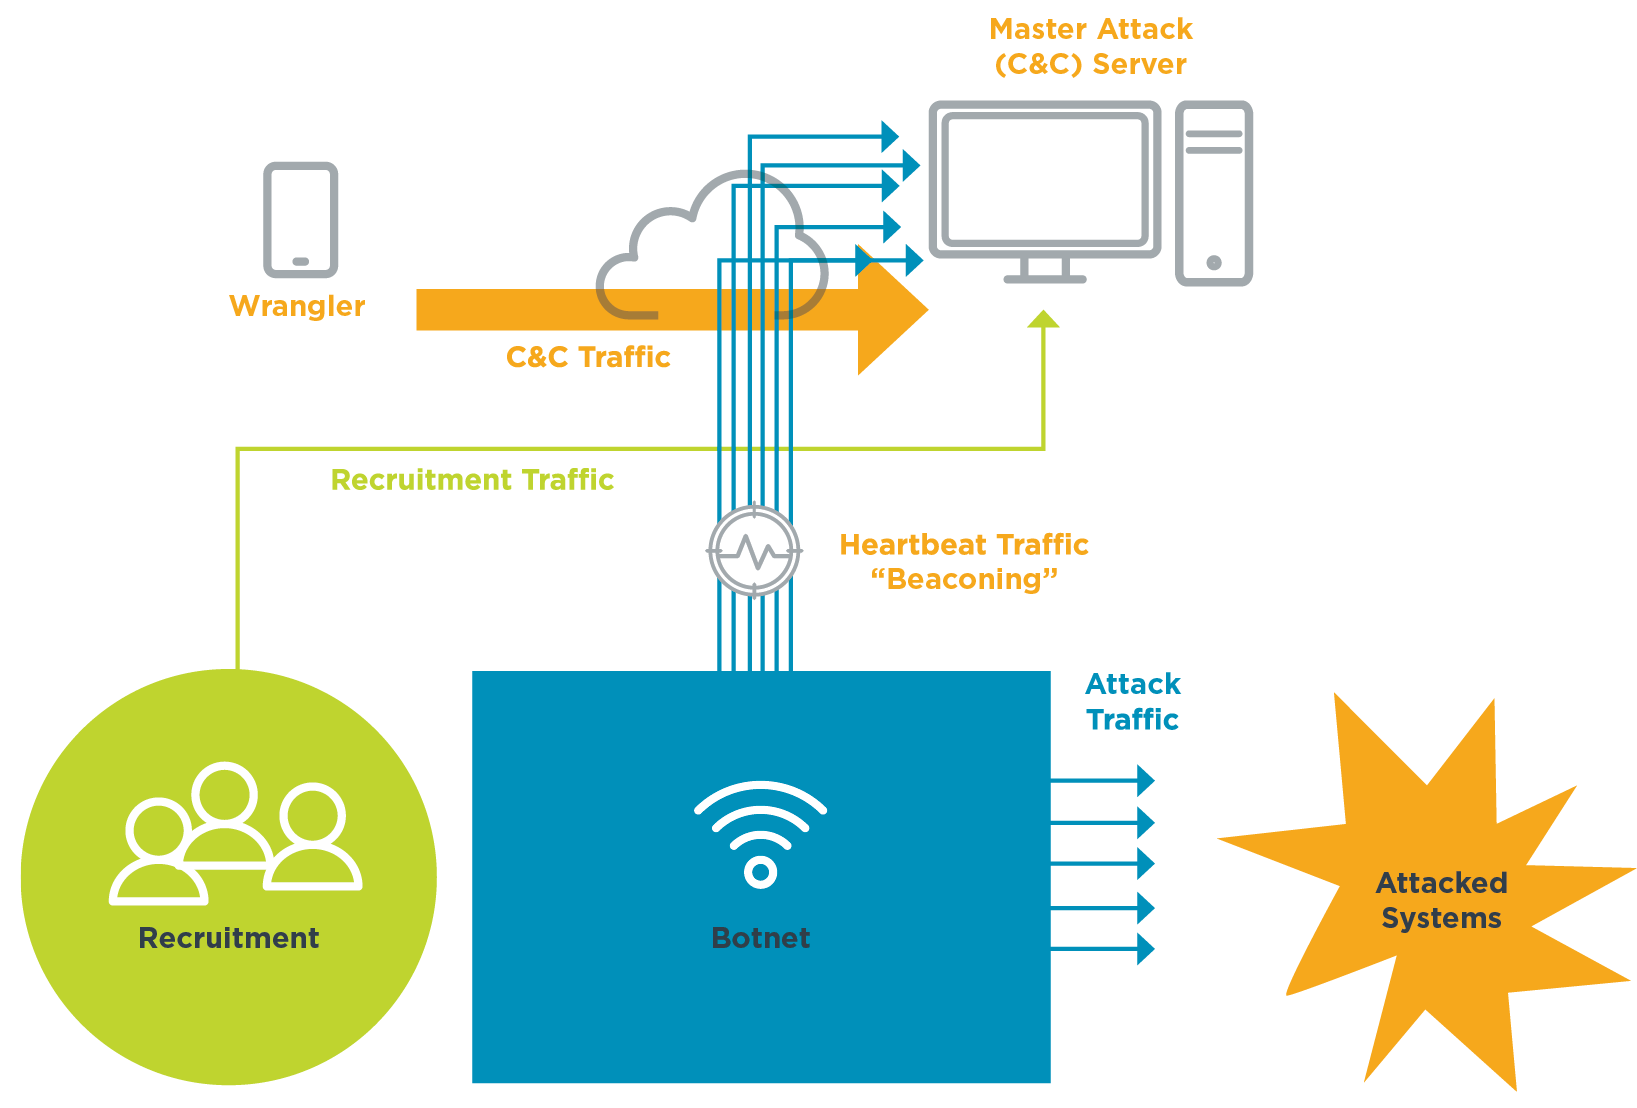 A diagram of a DDoS attack, showing recruitment, the Botnet and attack traffic, beaconing, command and control (C&C) traffic from the wrangler and the master C&C server.